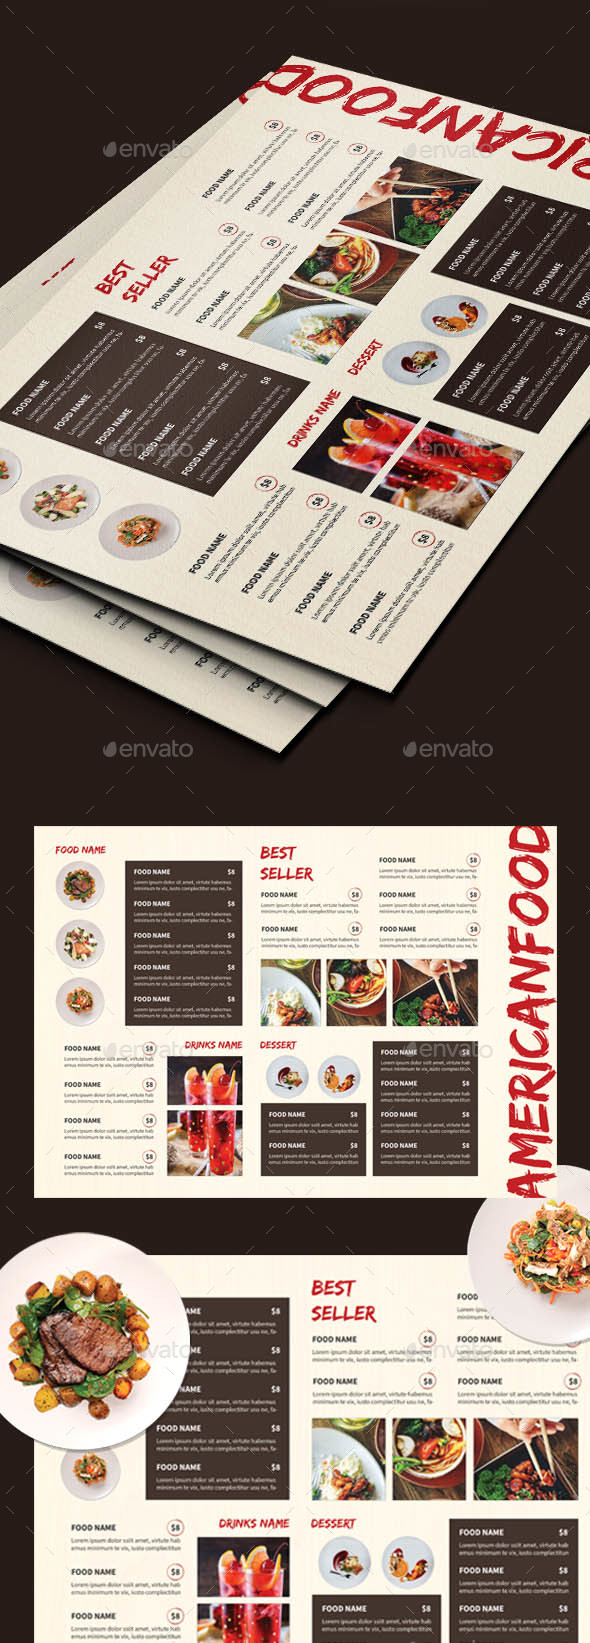 Vintage Food Menus - Food Menus Print Templates